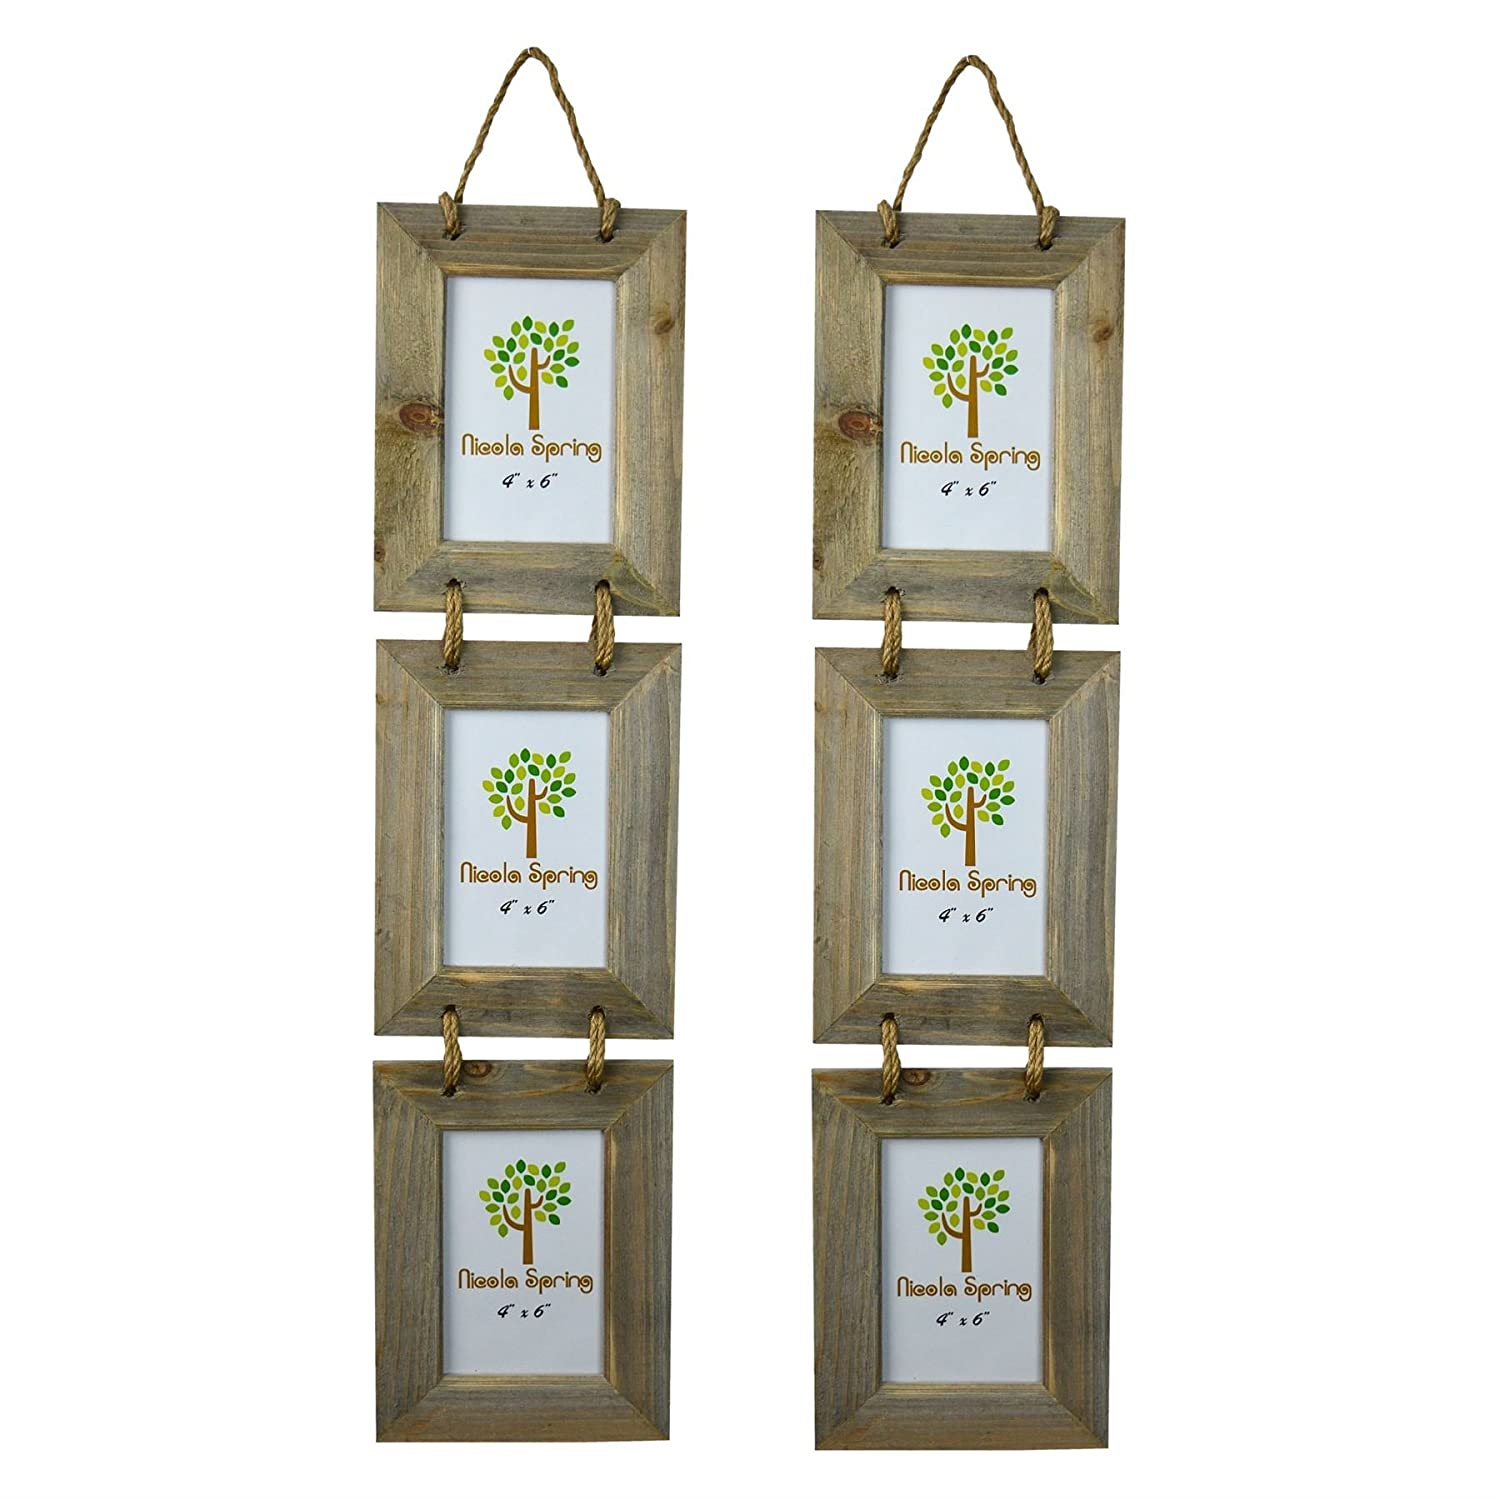 Nicola Spring Triple Wooden 3 Photo Hanging Picture Frame - 4 x 6 - Pack Of 2